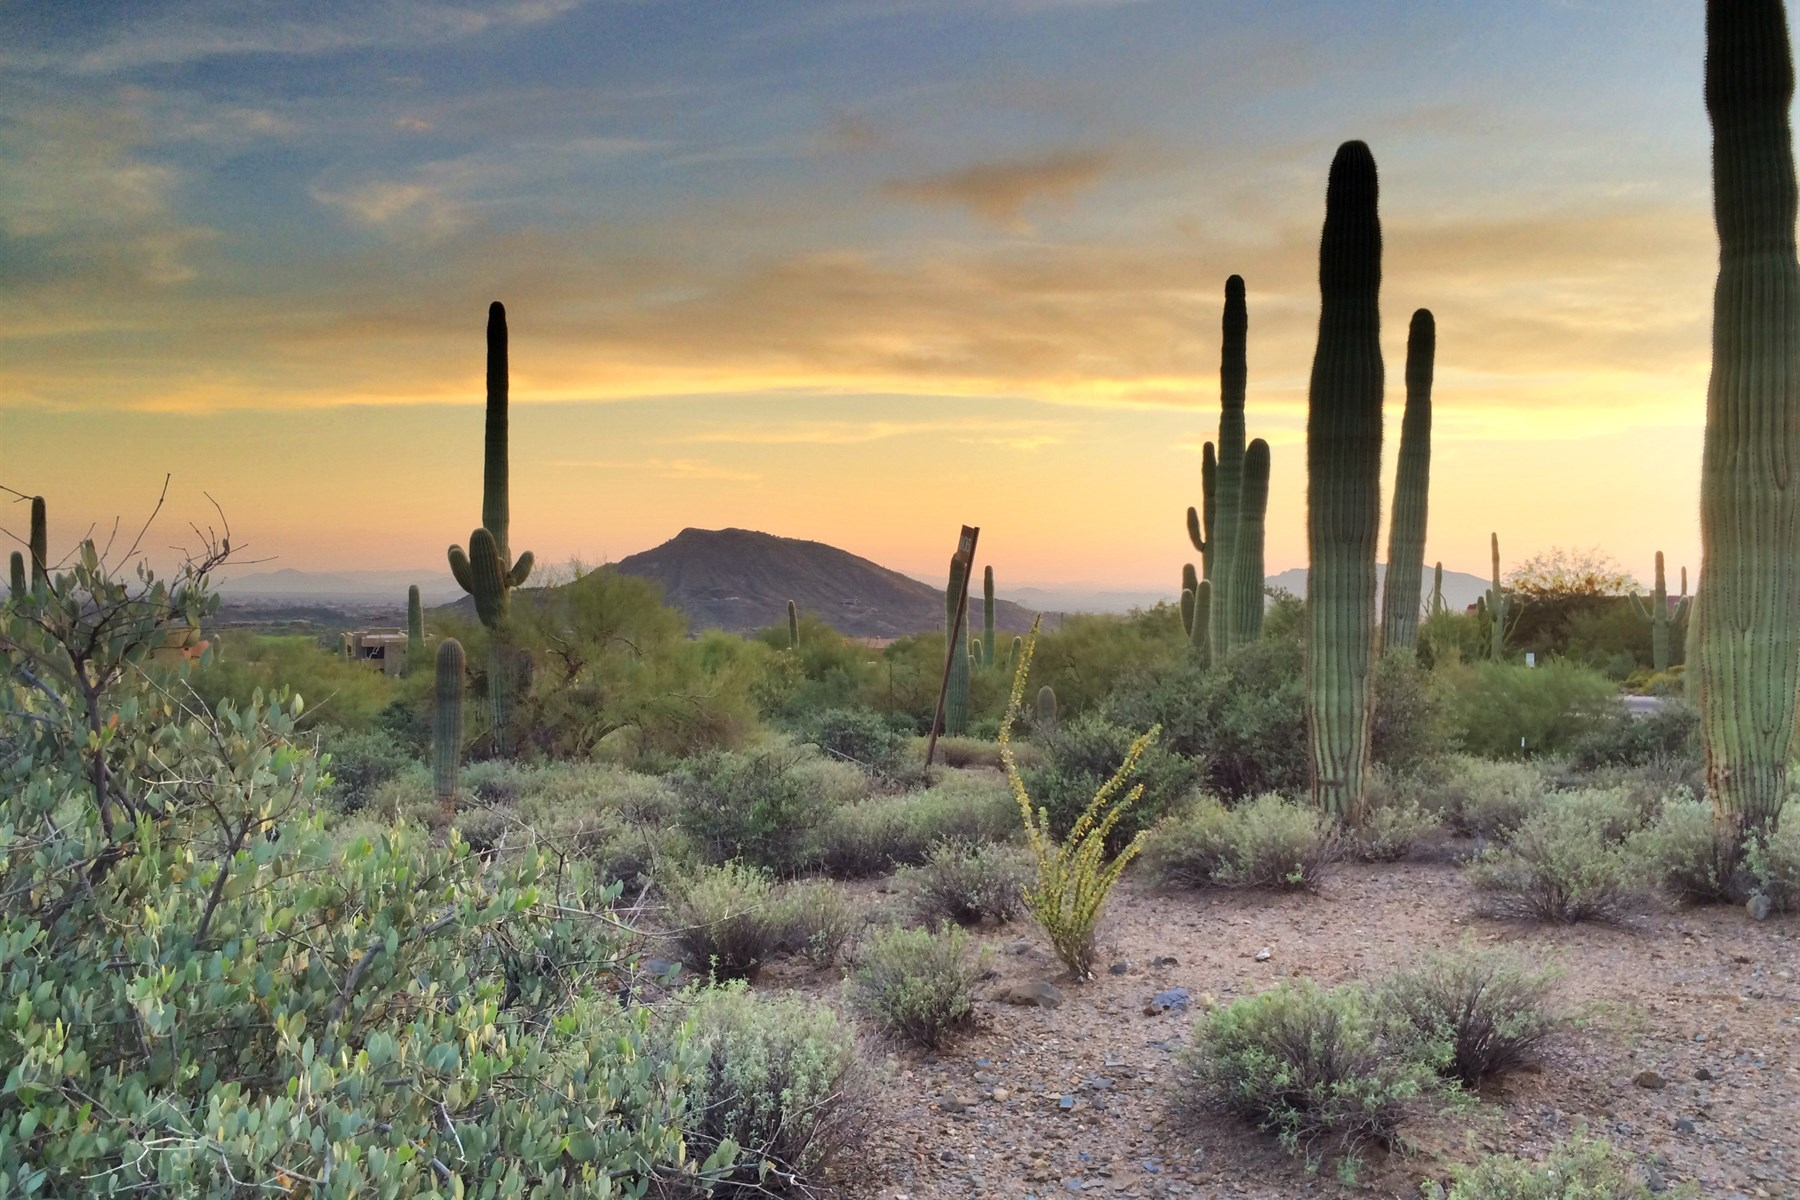 Arazi için Satış at Beautiful Views from this 1+ Acre Desert Mountain Saguaro Forest Custom Lot 41819 N Saguaro Forest Dr #105 Scottsdale, Arizona 85262 Amerika Birleşik Devletleri